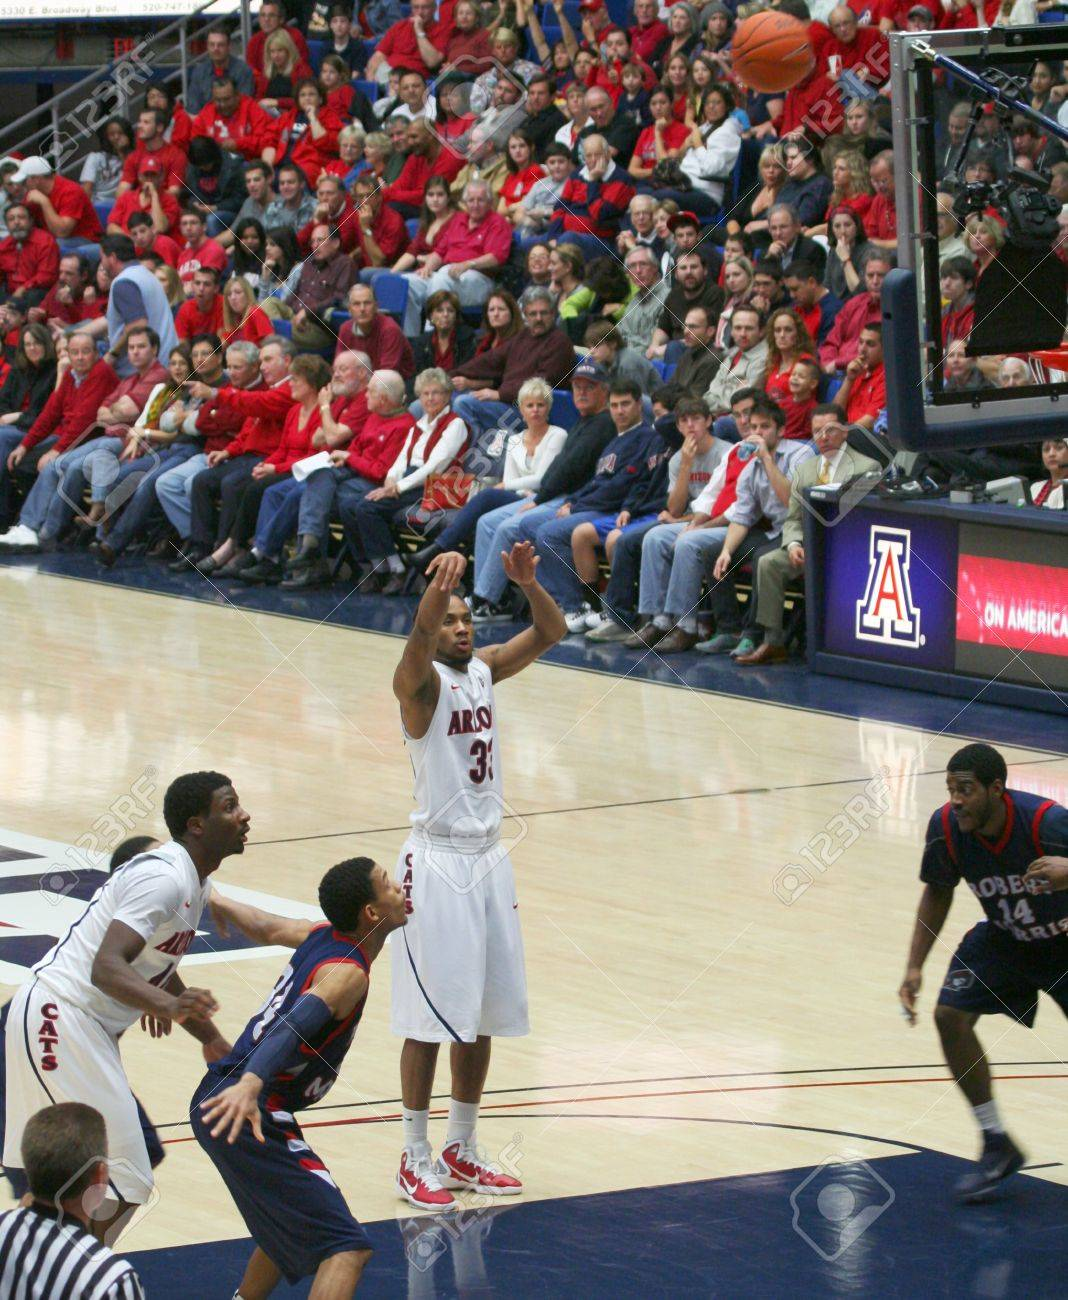 A Foul Shot by Jesse Perry in a University of Arizona Wildcats Men's Basketball Game Against the Robert Morris Colonials at McKale Center, Tucson, on December 22, 2010. Also Solomon Hill, Russell Johnson, Gary Wallace. Stock Photo - 8533051